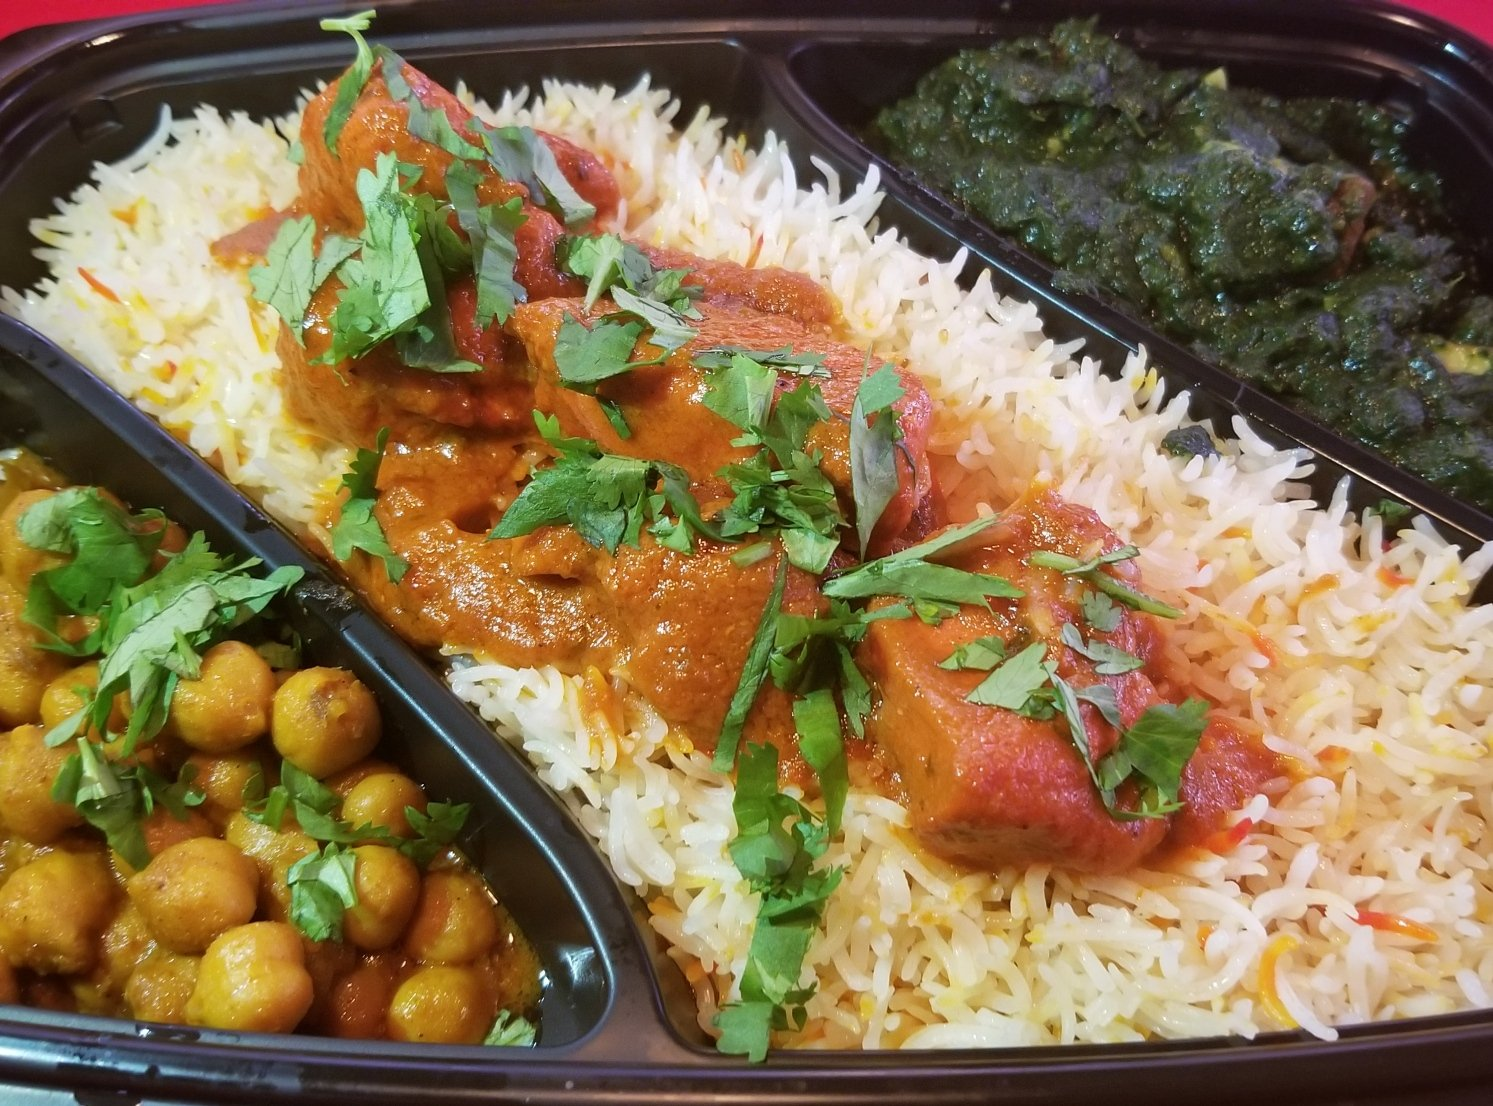 Each $11 platter comes with butter chicken and two side dishes. Photo courtesy of Butter Chicken Company.